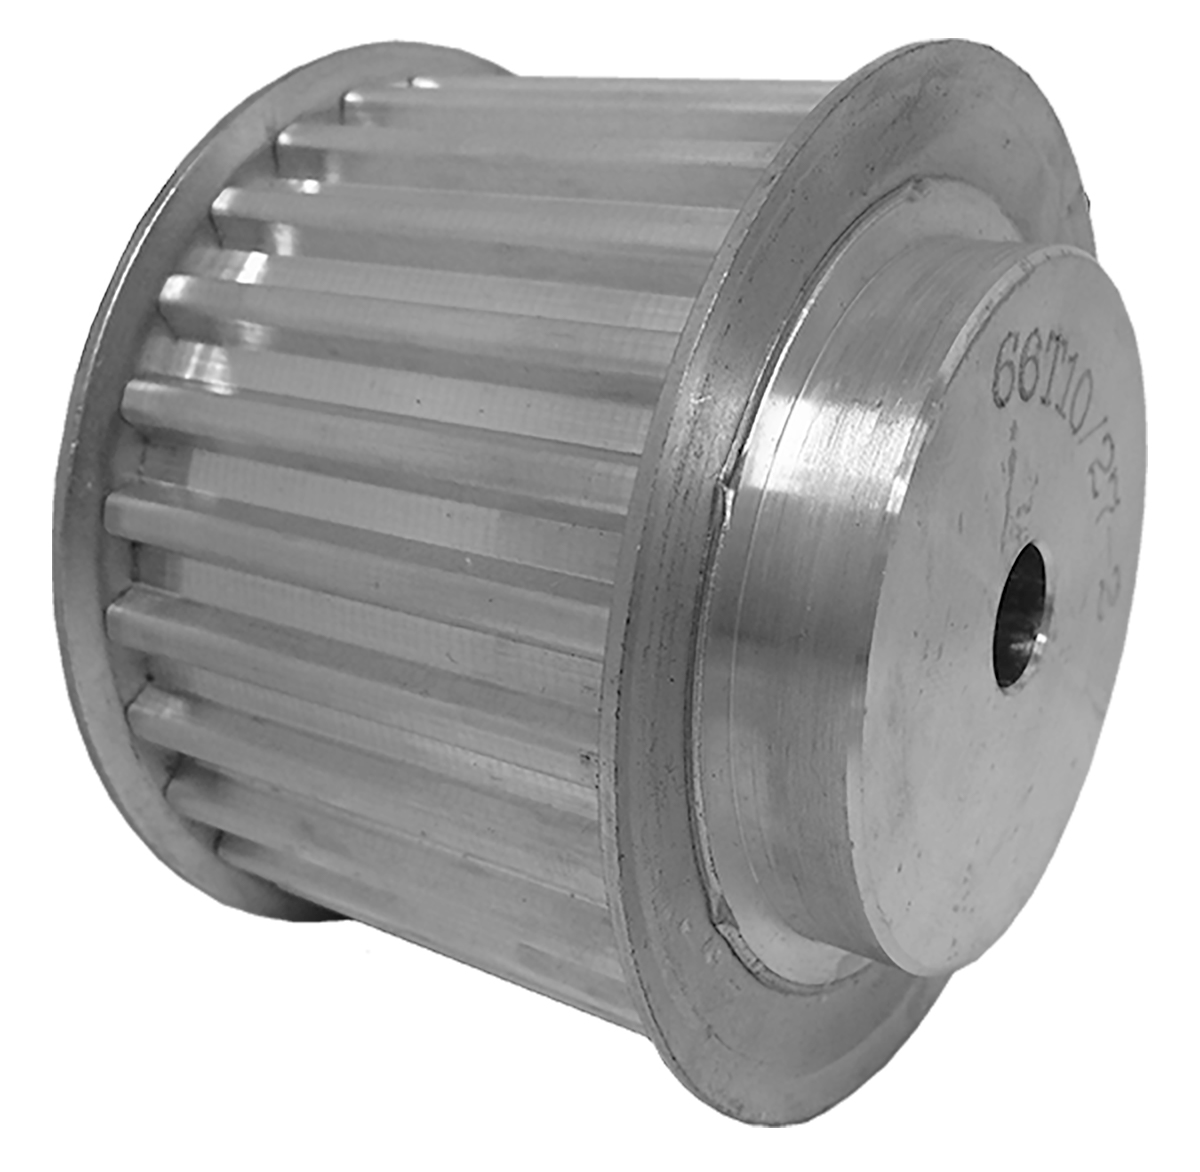 66T10/27-2 - Aluminum Metric Pulleys